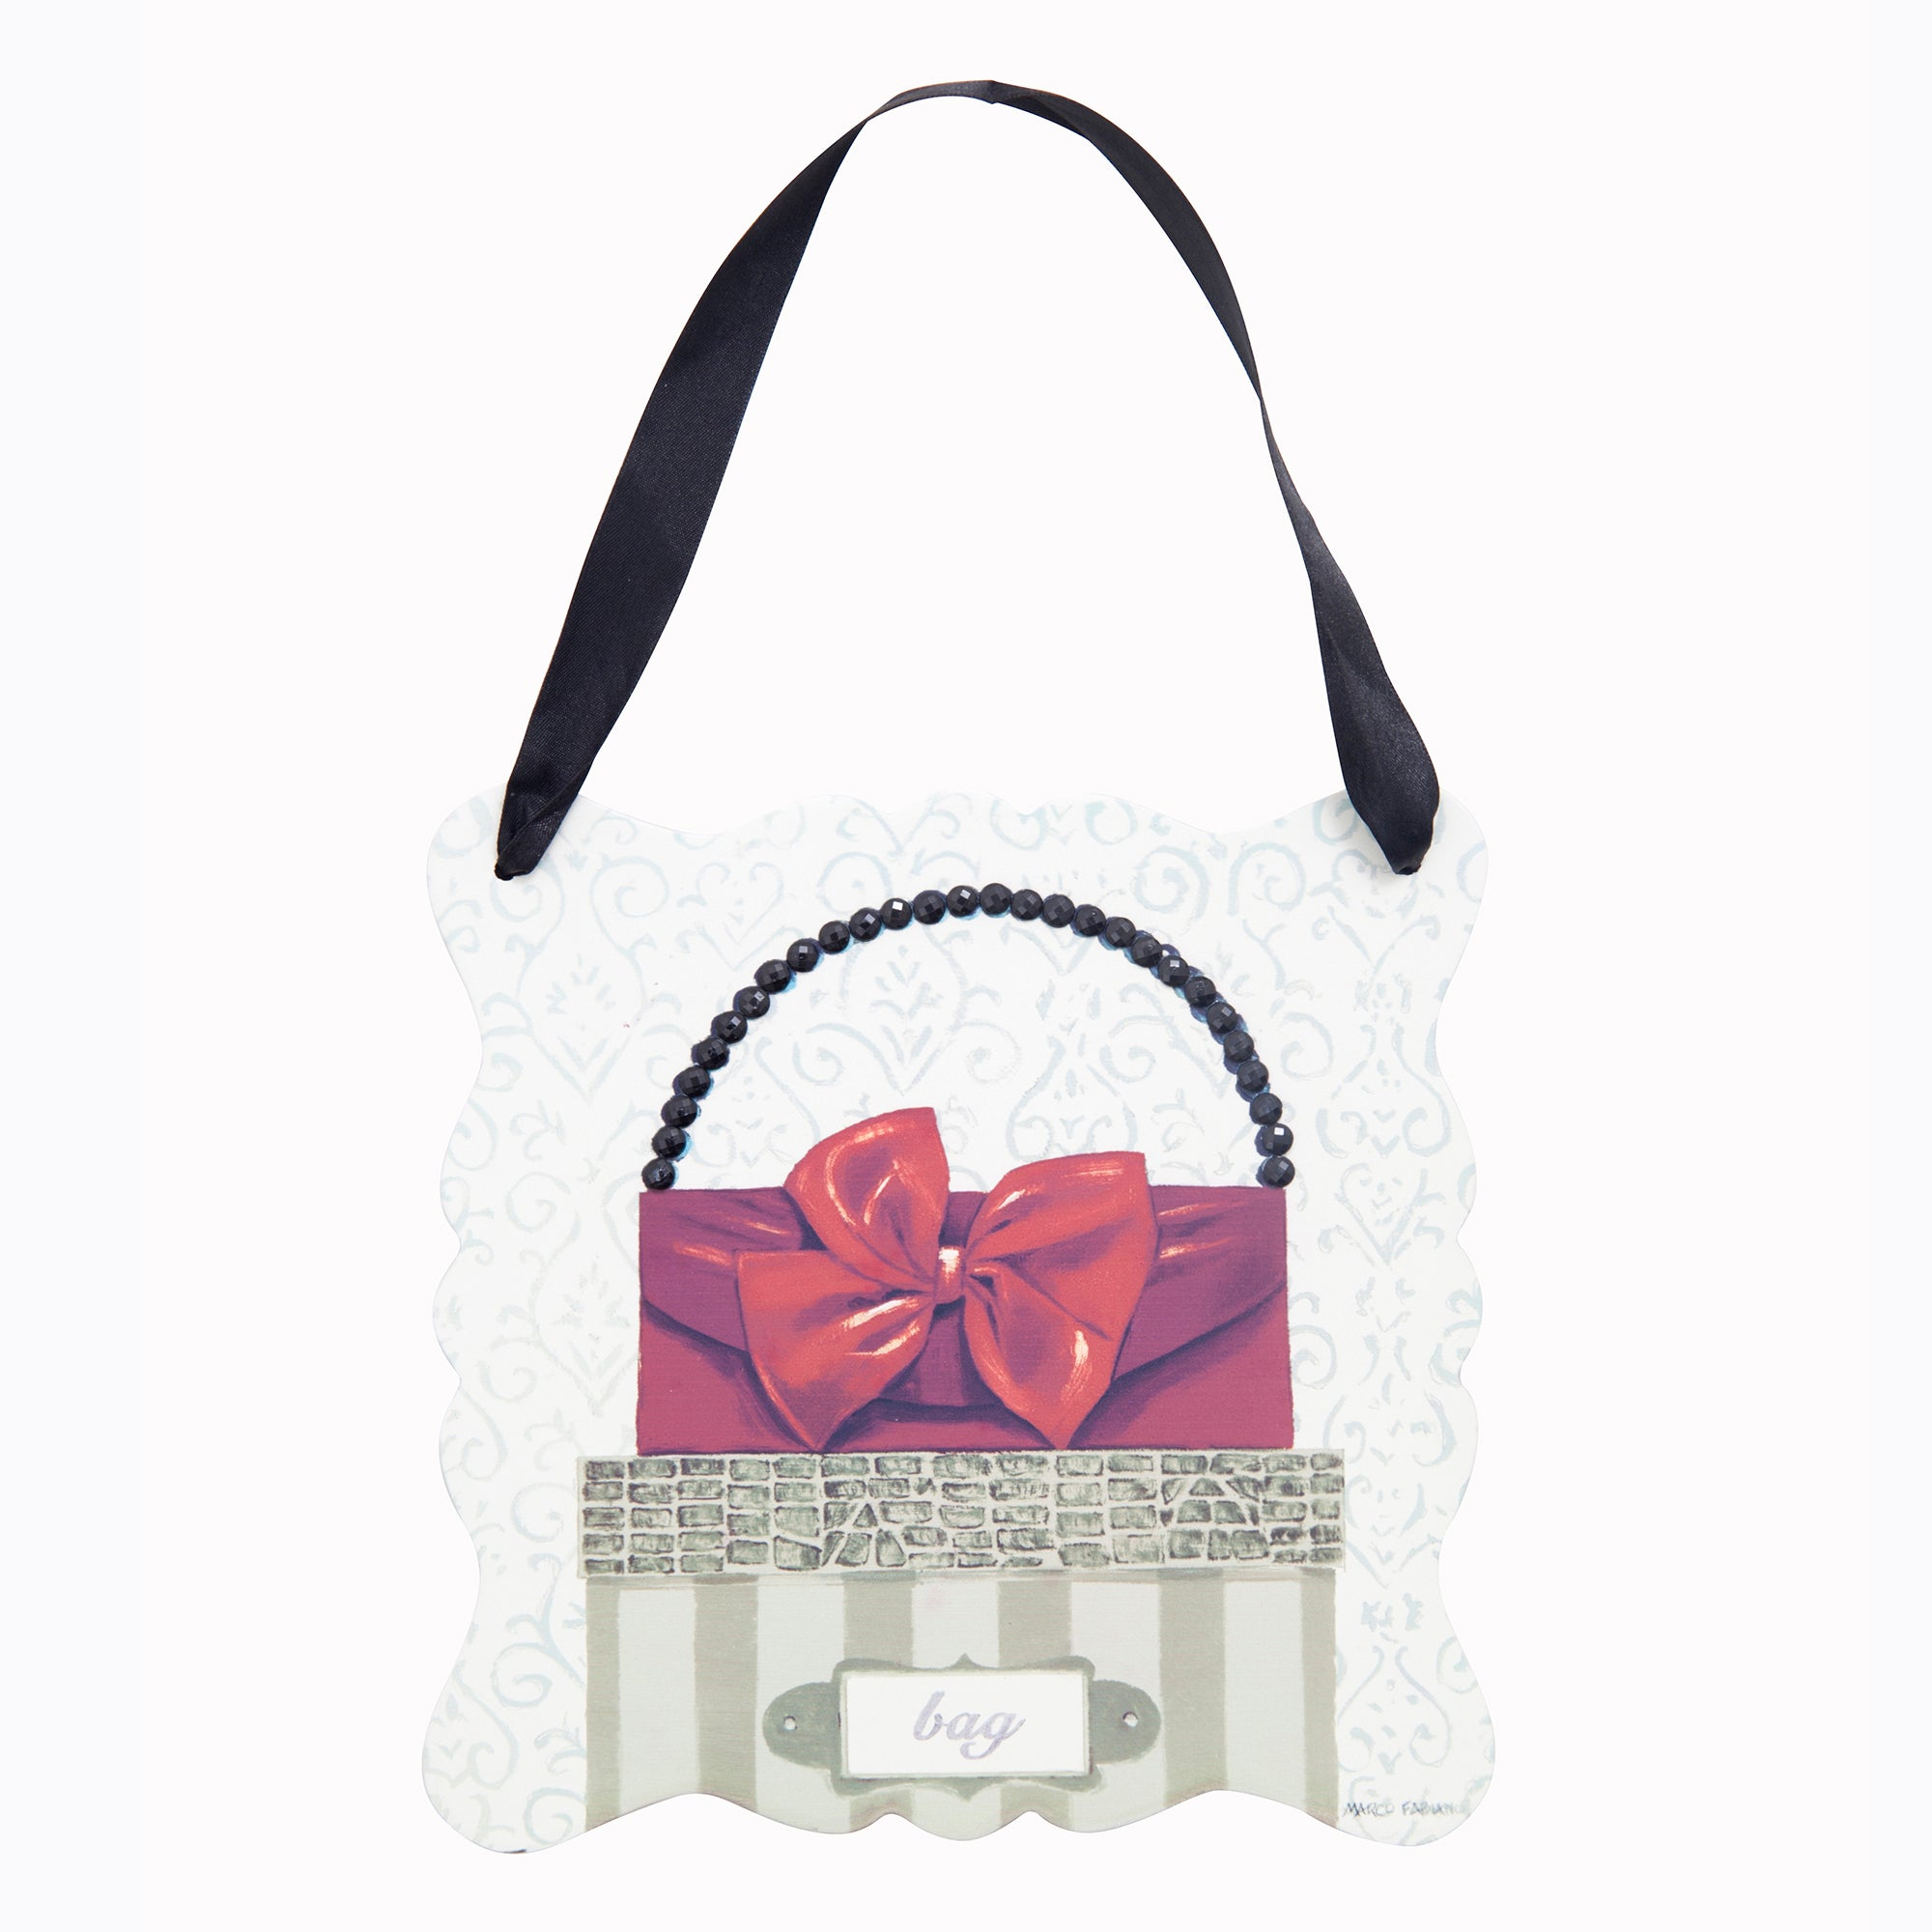 Handbag Plaque